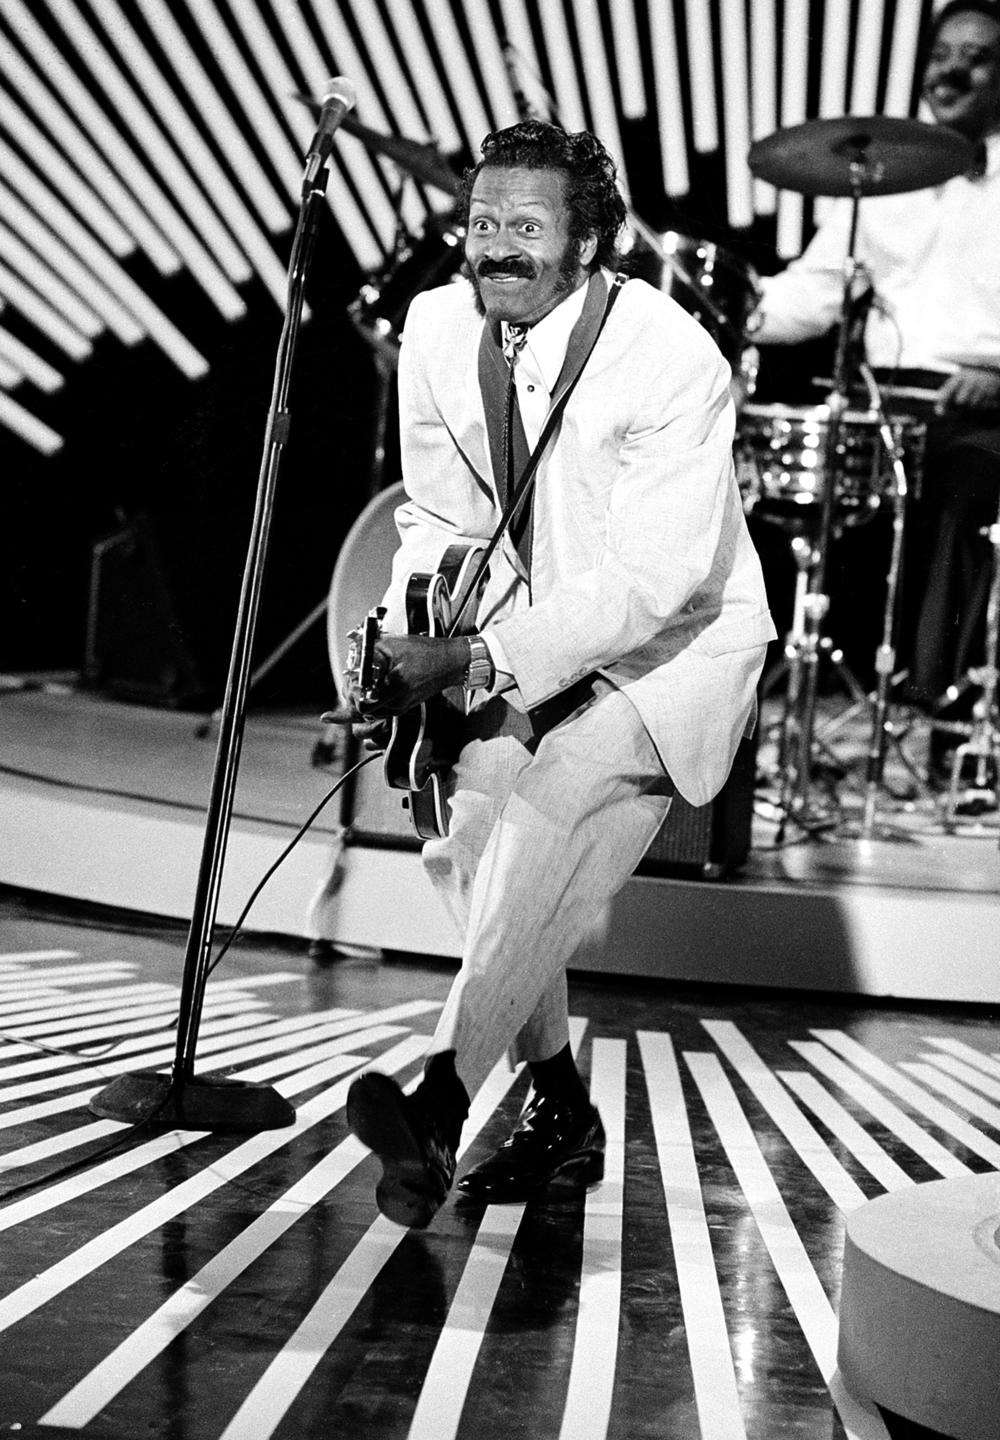 """American guitarist and singer Chuck Berry performs his """"duck walk"""" on stage as he plays his guitar on April 4, 1980. The location is not known."""